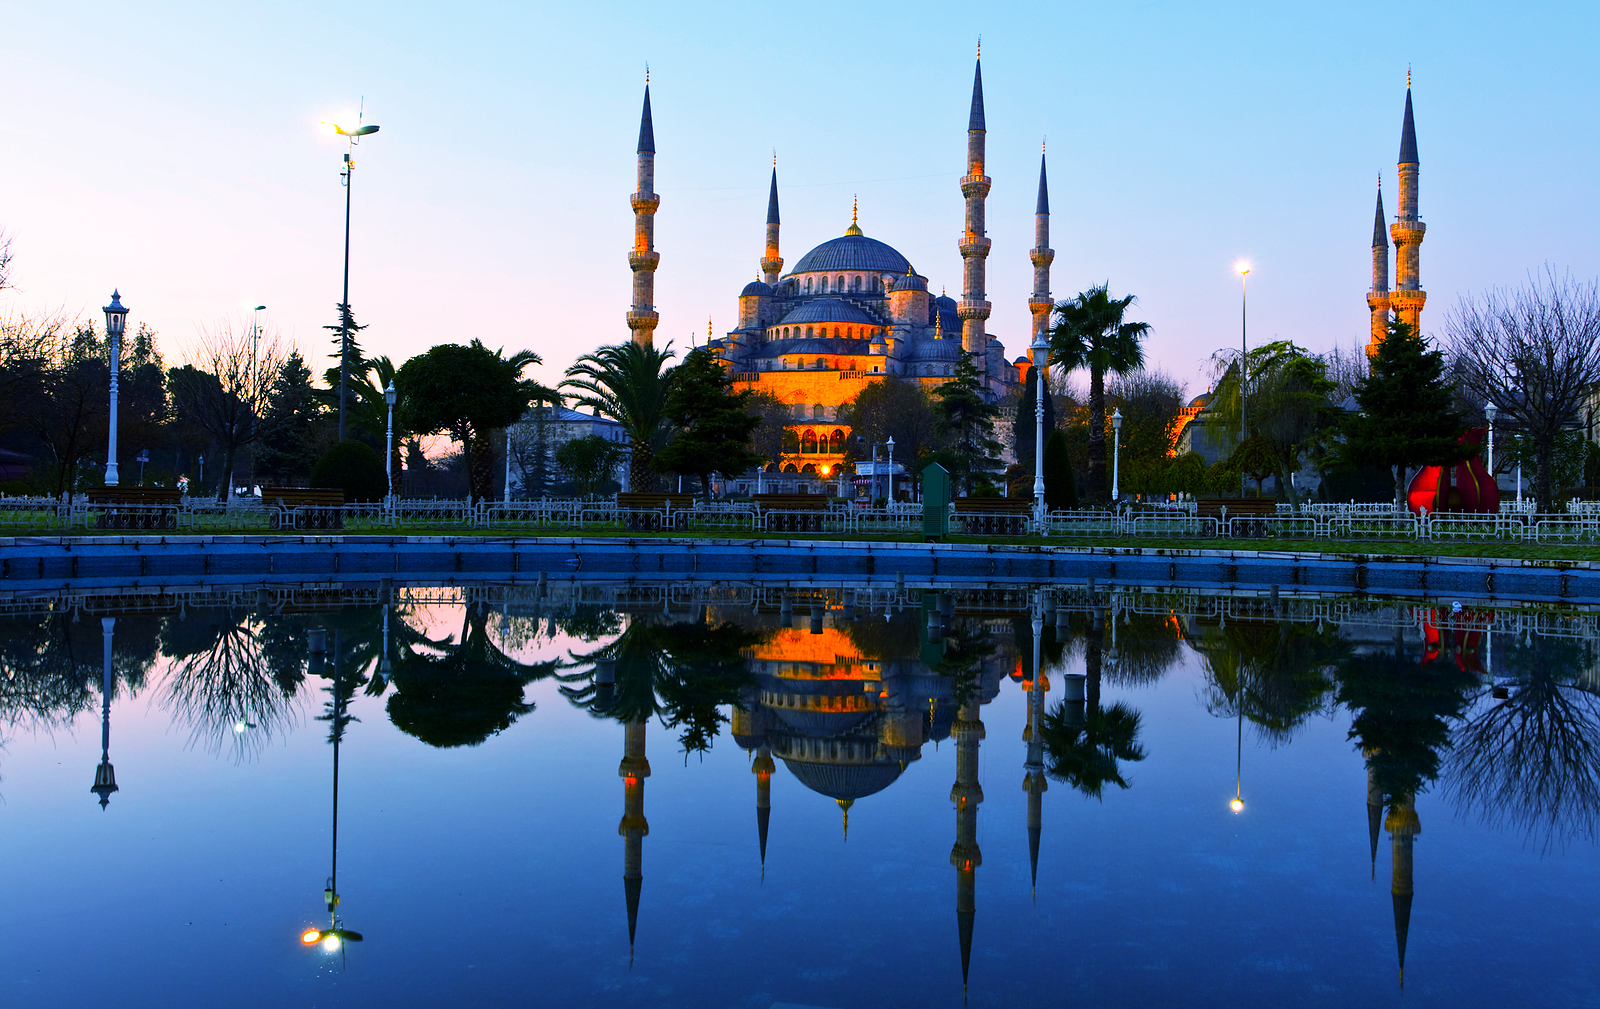 tourism in turkey The attacks in turkey have devastated tourism, but the system in istanbul has already adapted to a new normal of almost routine violence.